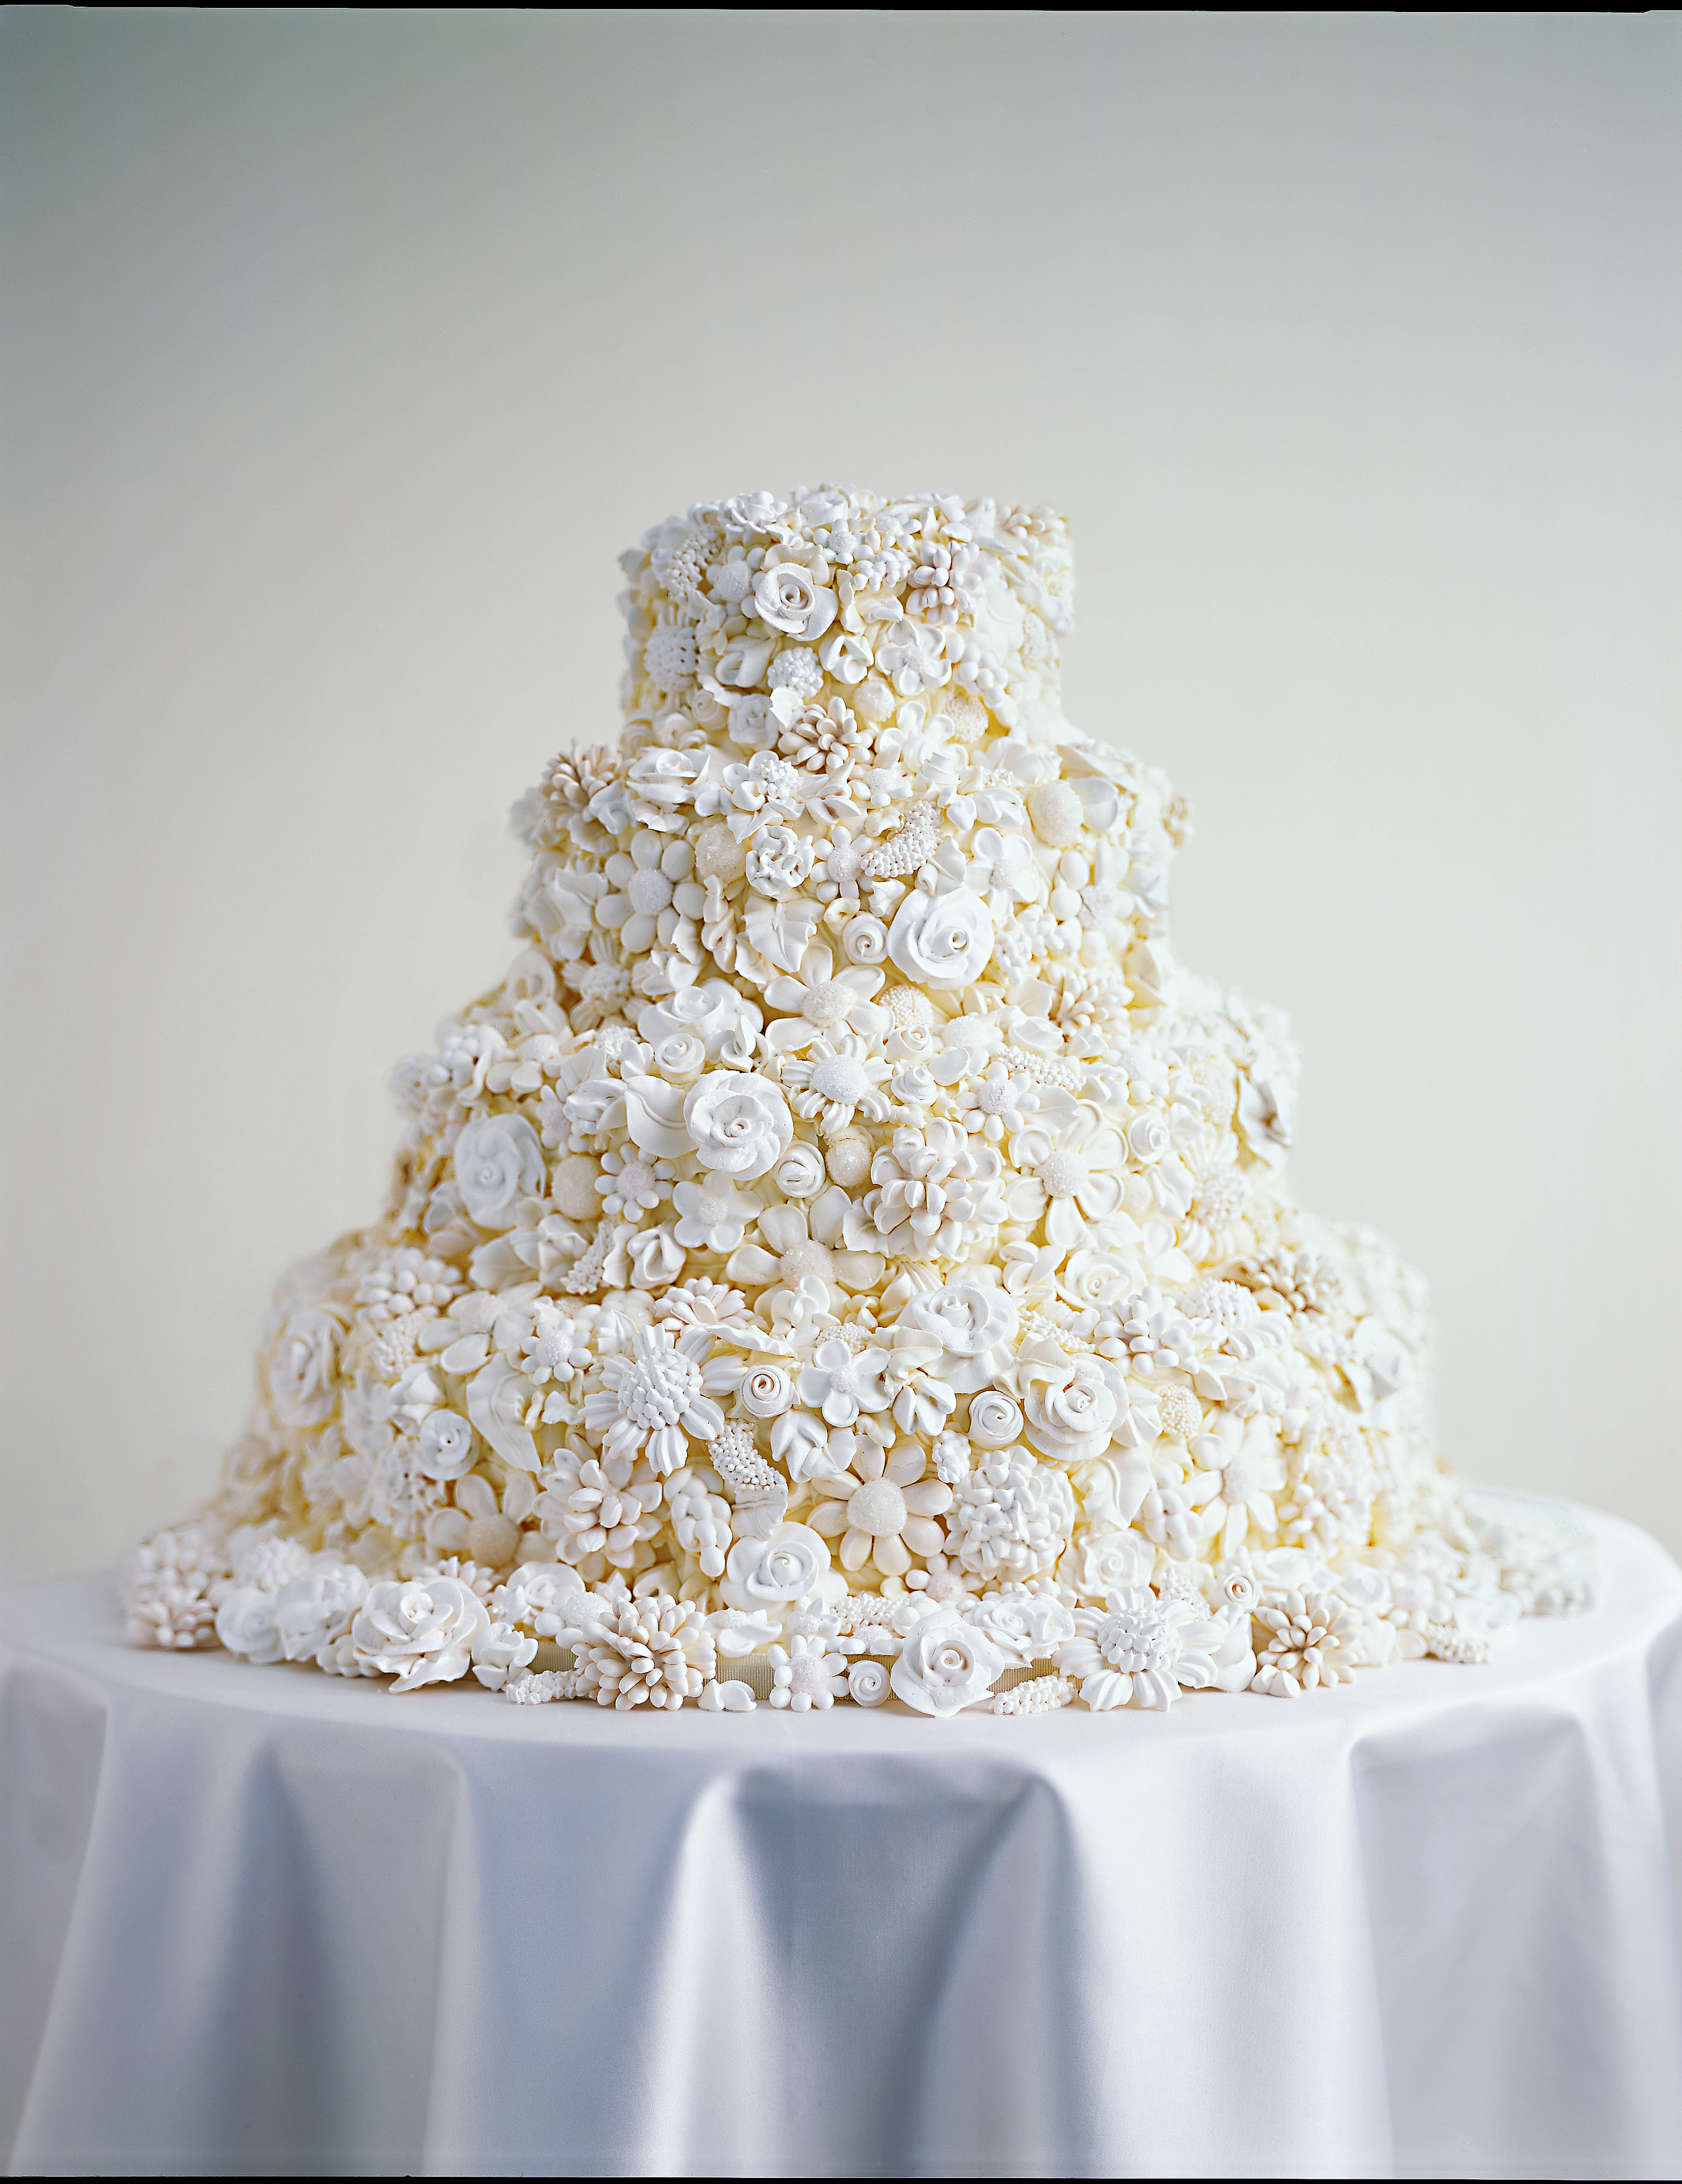 Pg 202 - meringue bouquet cake.jpg